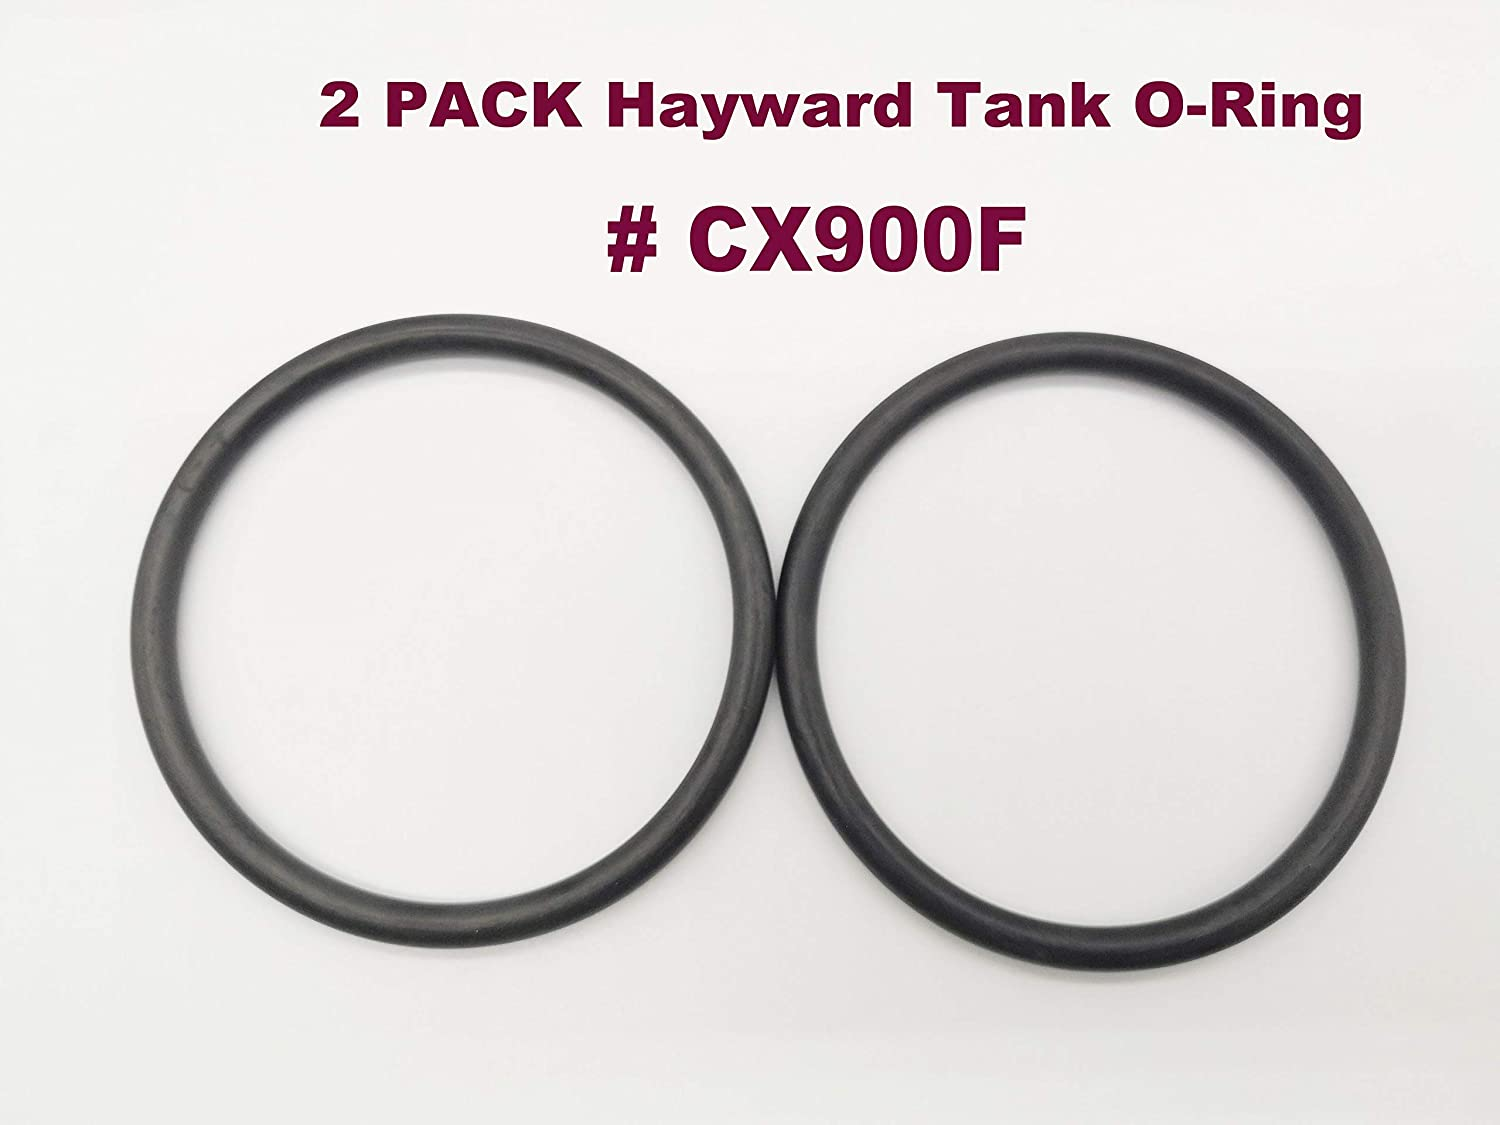 HAKATOP 2 Pack CX900F Filter Head O-Ring Replacement for Hayward Star-Clear Plus Cartridge Filter Series and Separation Tank O-240 U9-228